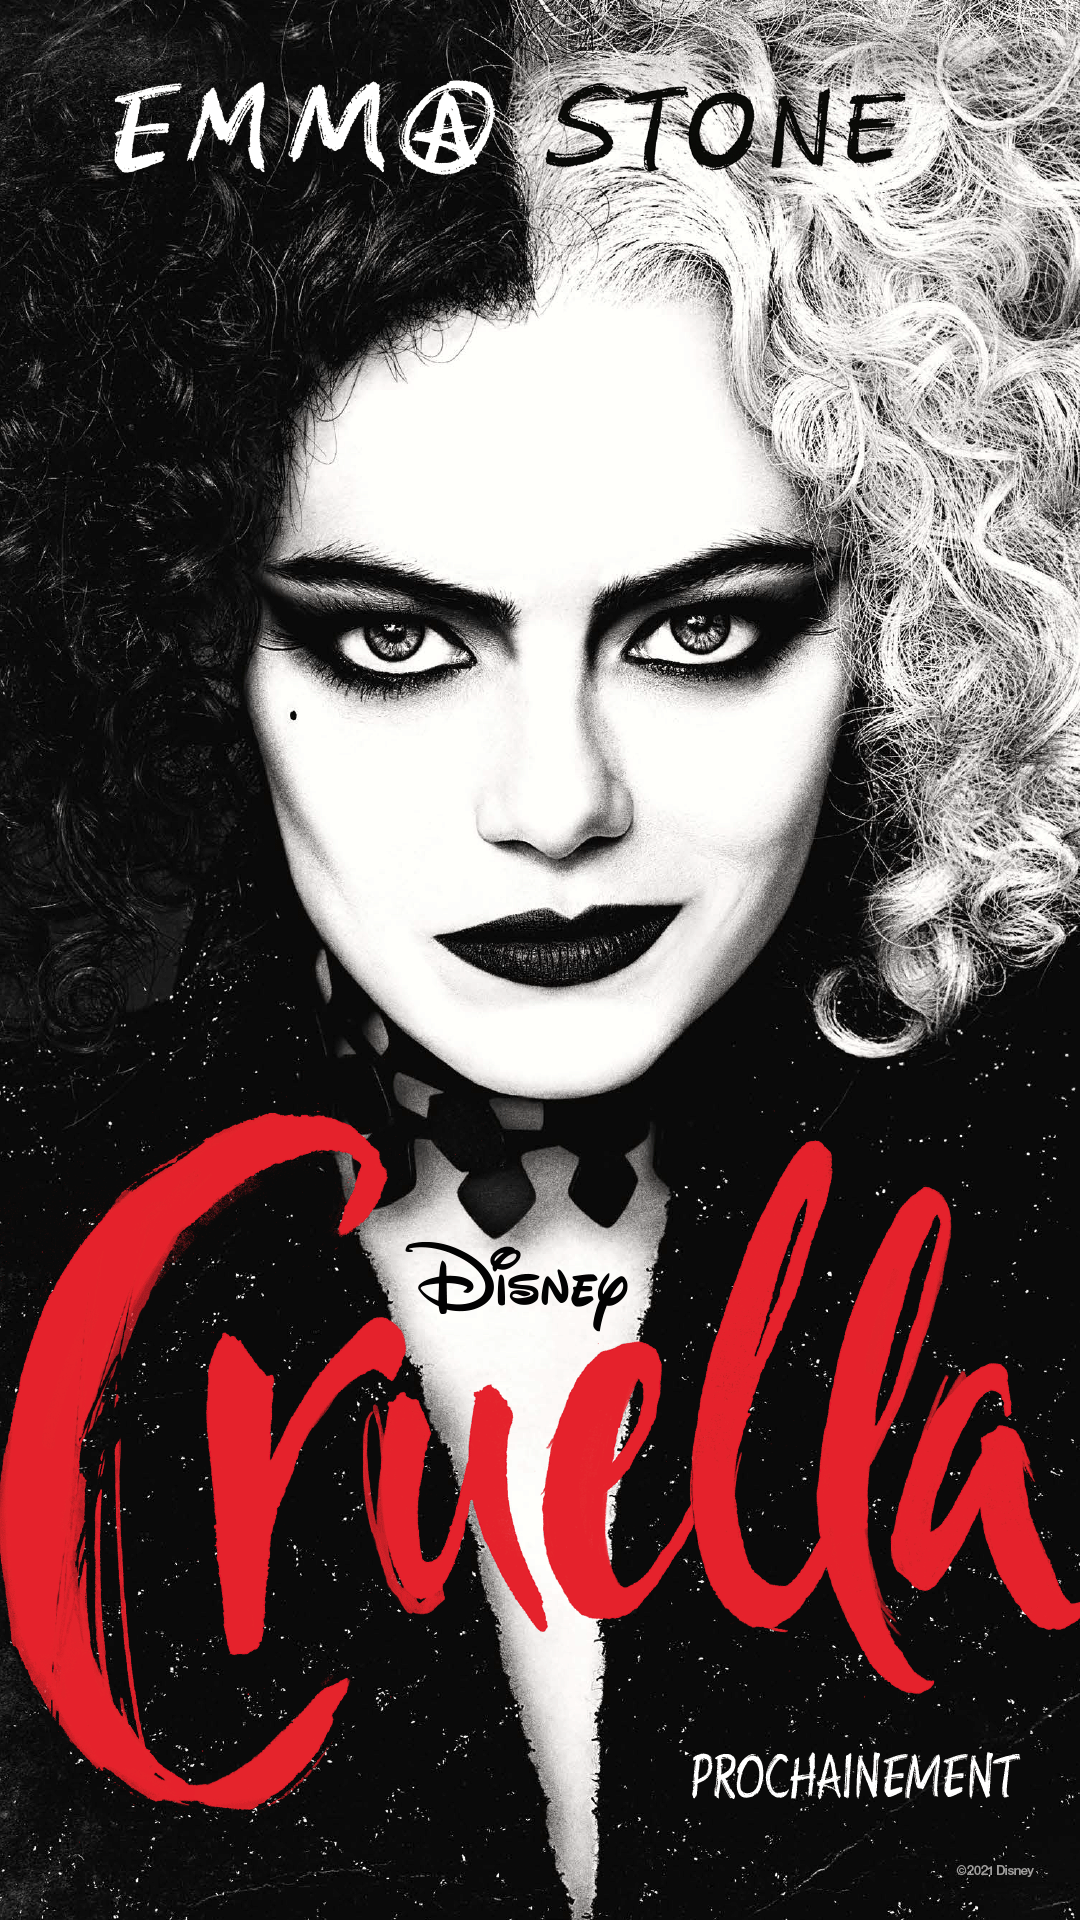 Aff Distr Cruella Screen TeaserIntl 2 1080x1920px fr